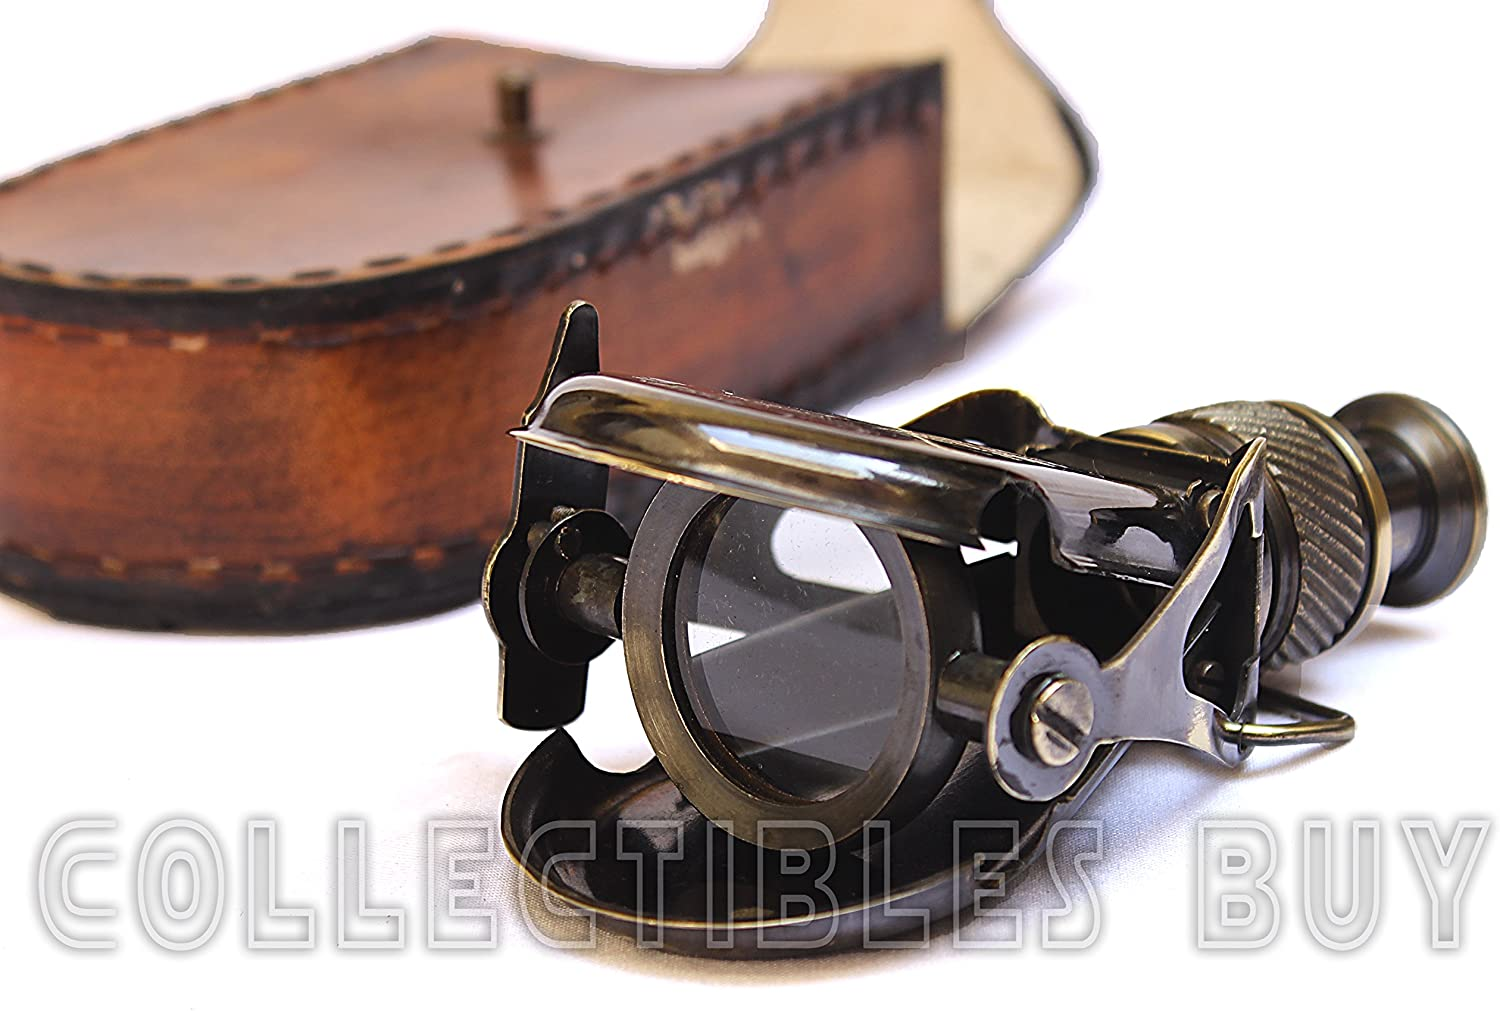 Nautical Columbus Small Single Brass Marine Vintage Binocular R & J Beck London 1857 Replica Model by Collectibles Buy